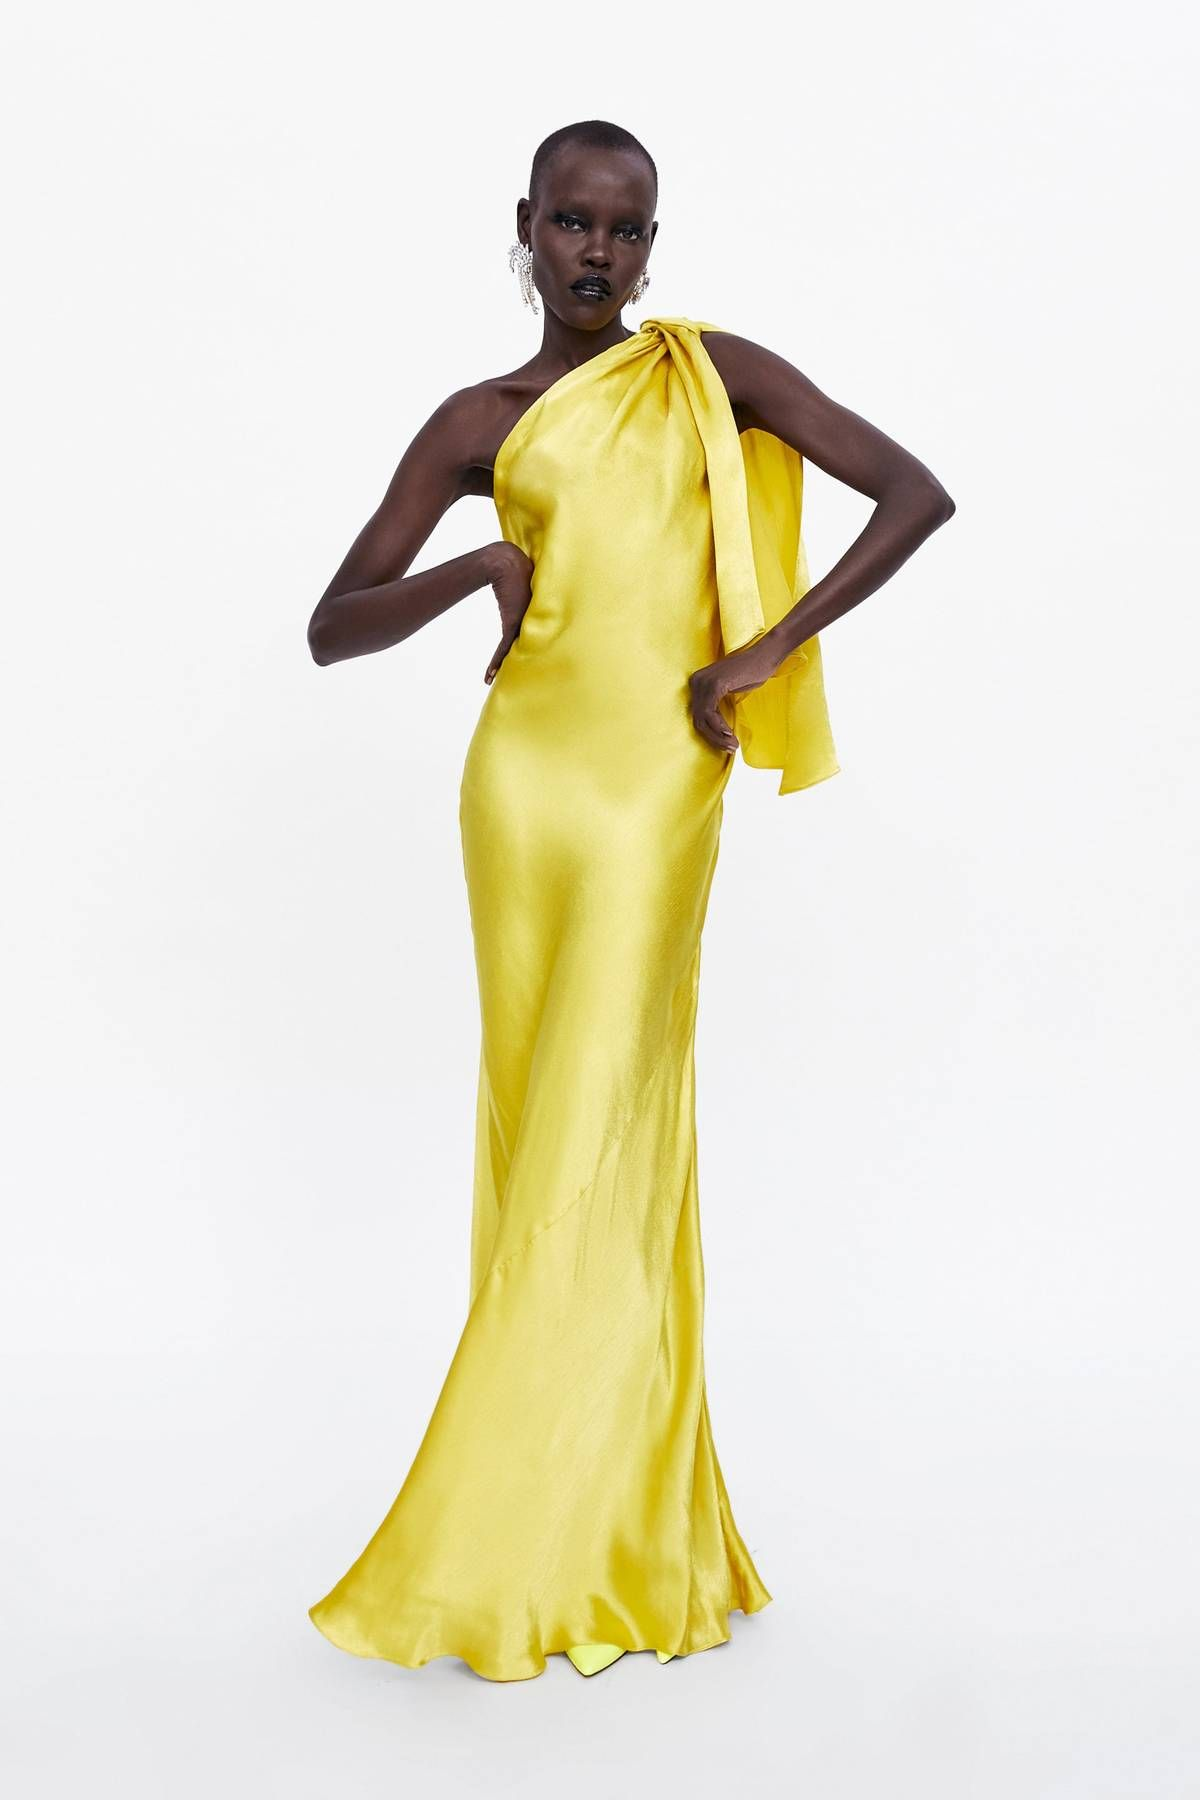 21 Extremely Fancy Dresses You D Never Guess Were From Zara Best Evening Dresses Fancy Dresses Dresses [ 1800 x 1200 Pixel ]